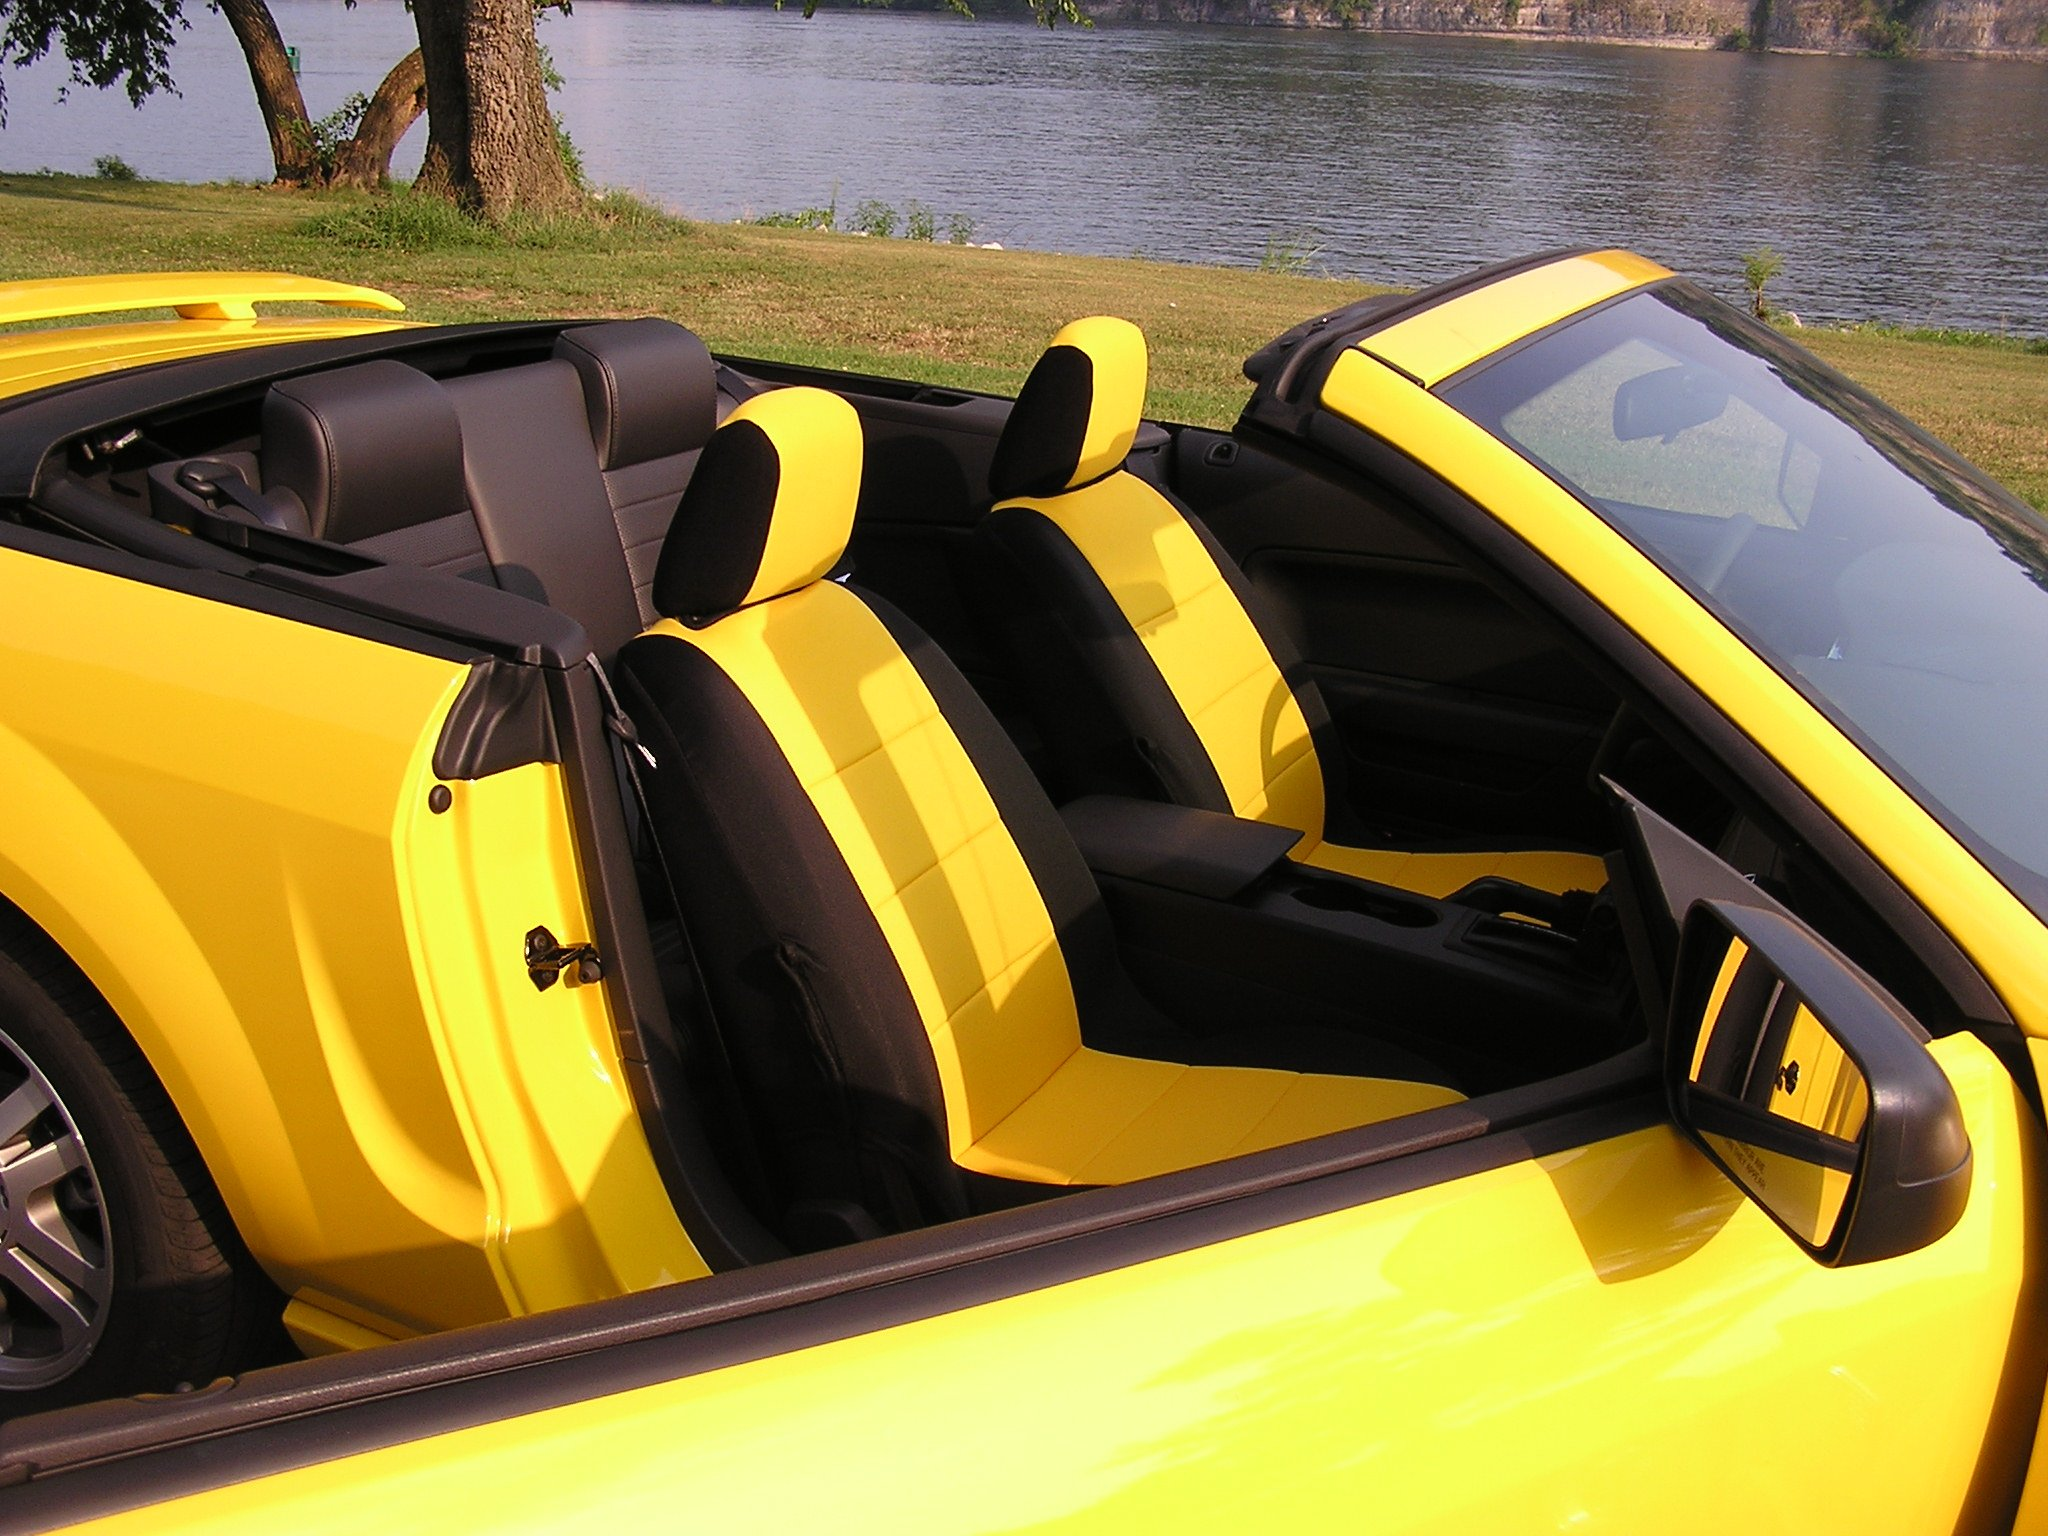 Mustang Seat Covers >> Seatcovers that match Screaming Yellow - Ford Mustang Forum